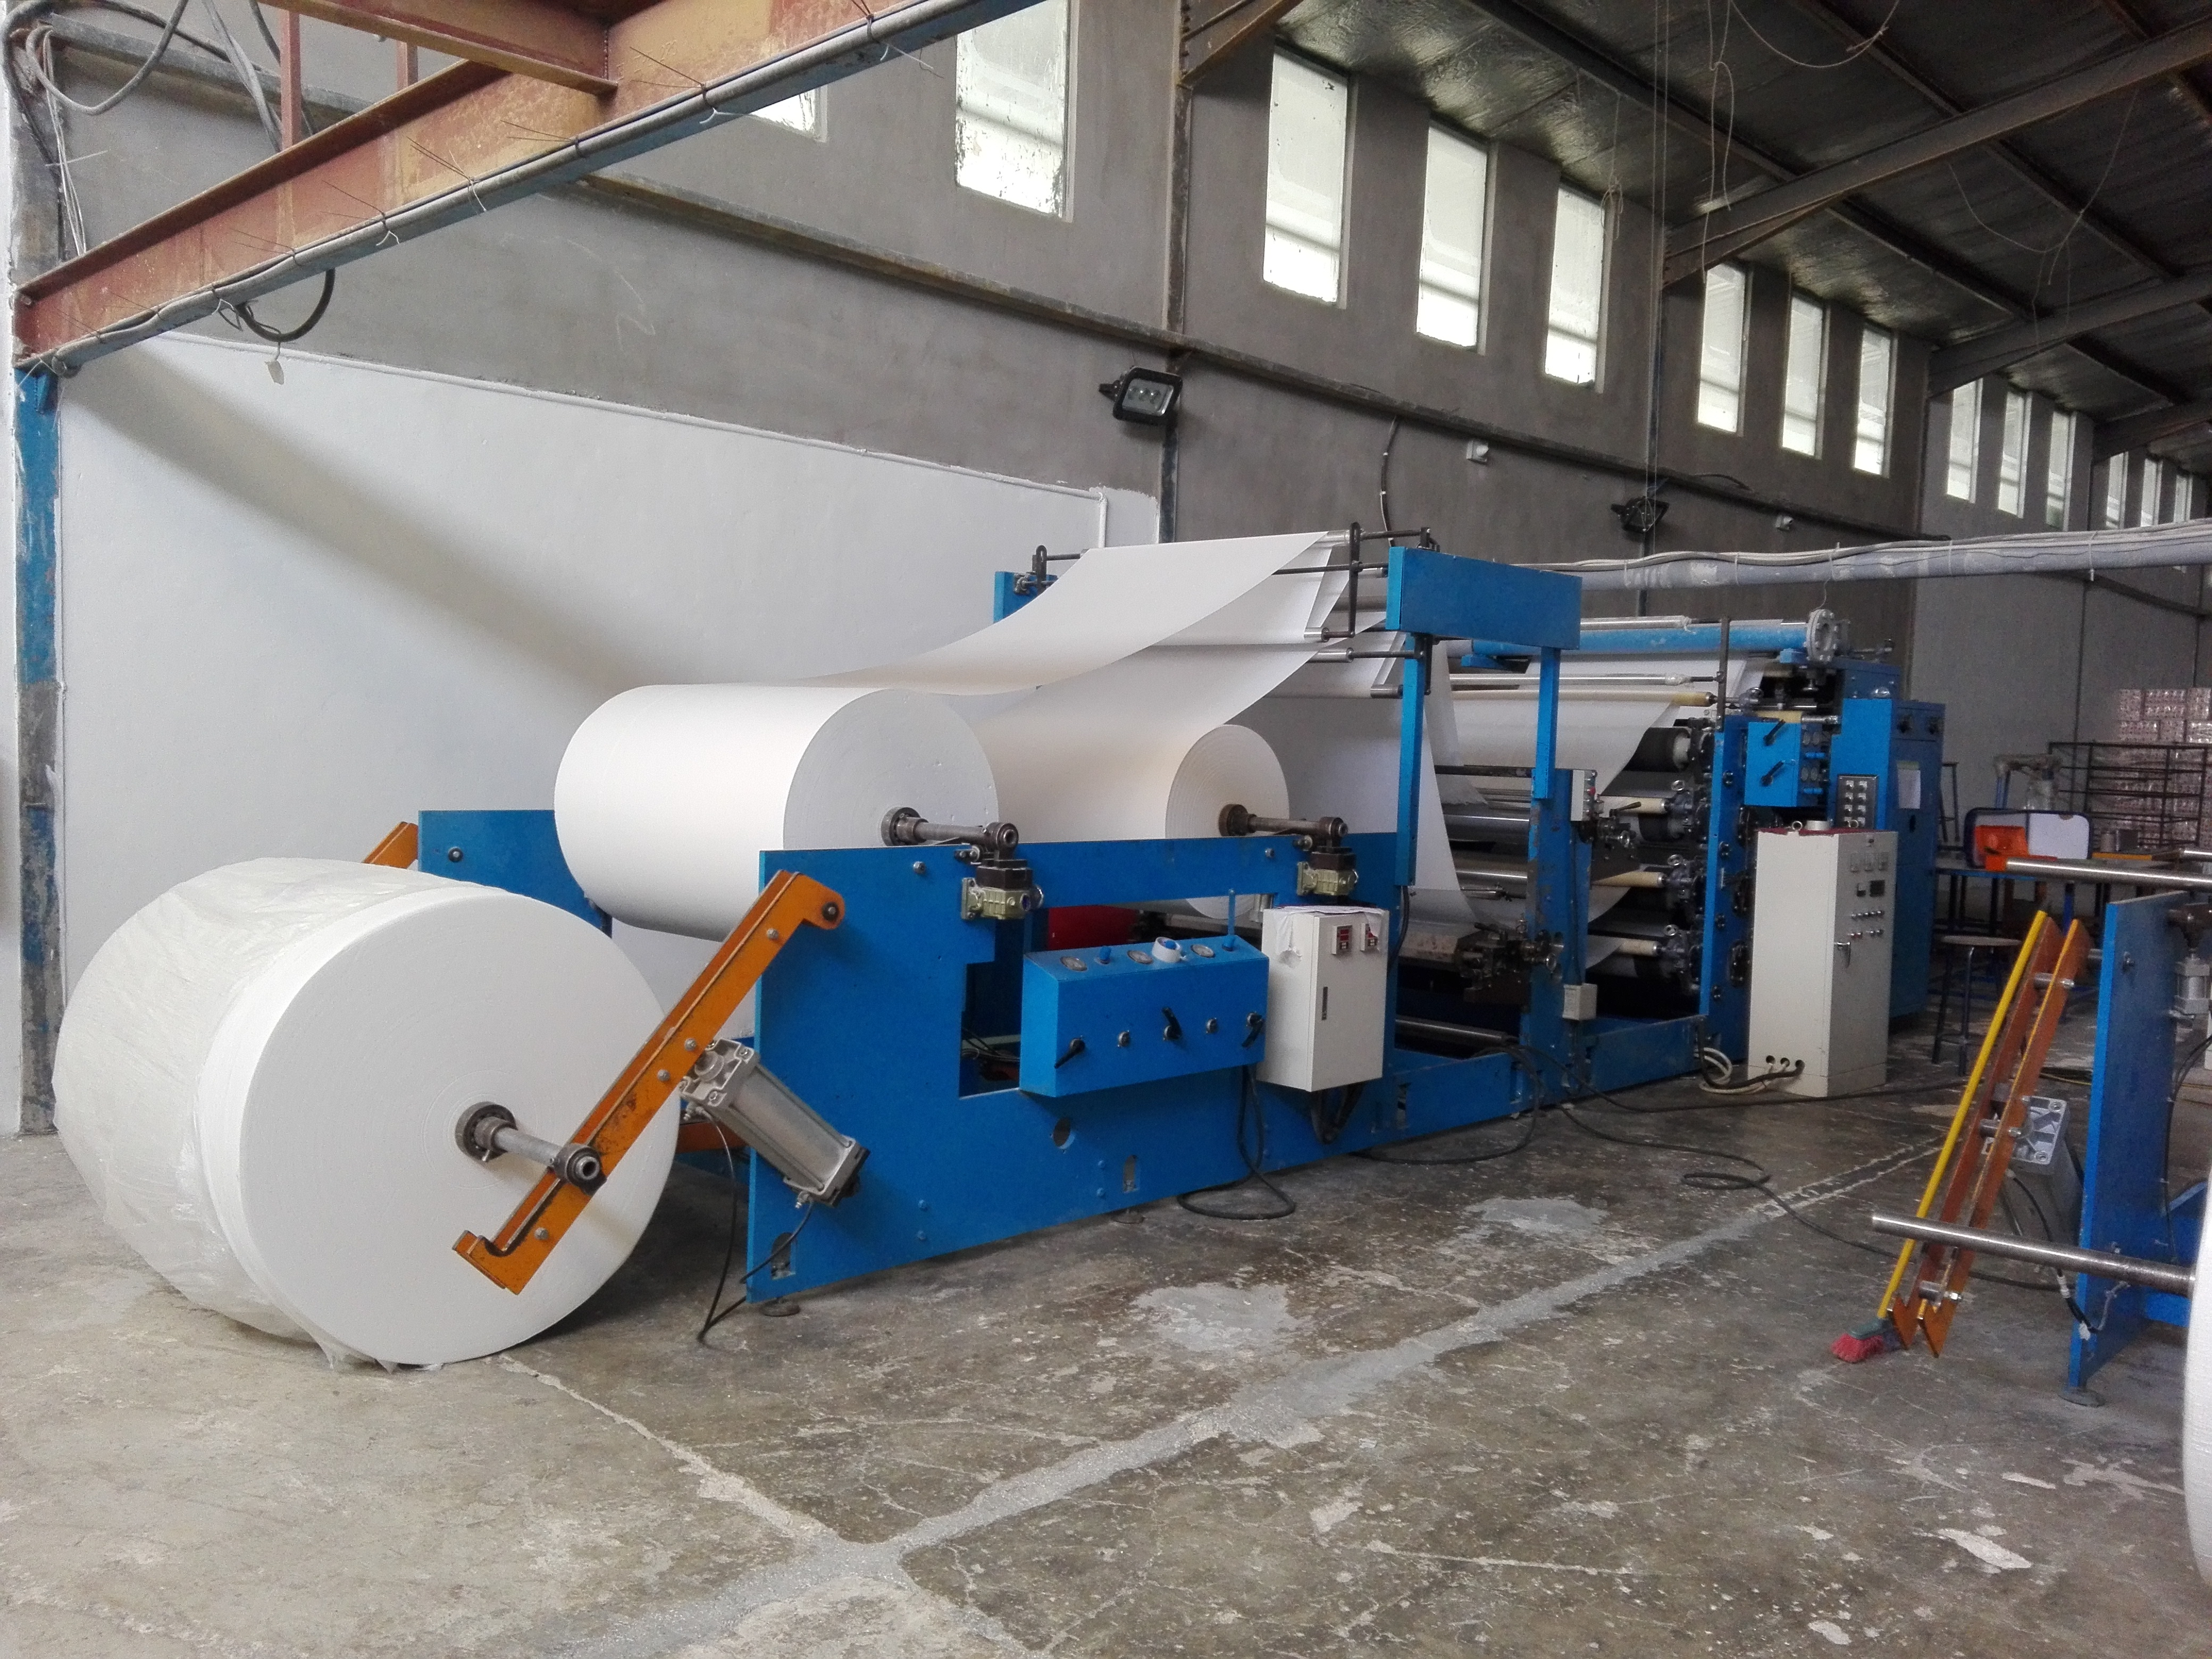 Mask Making Machines 2020 - Global Sales, Price, Revenue, Gross Margin And Market Share Forecast Outlook